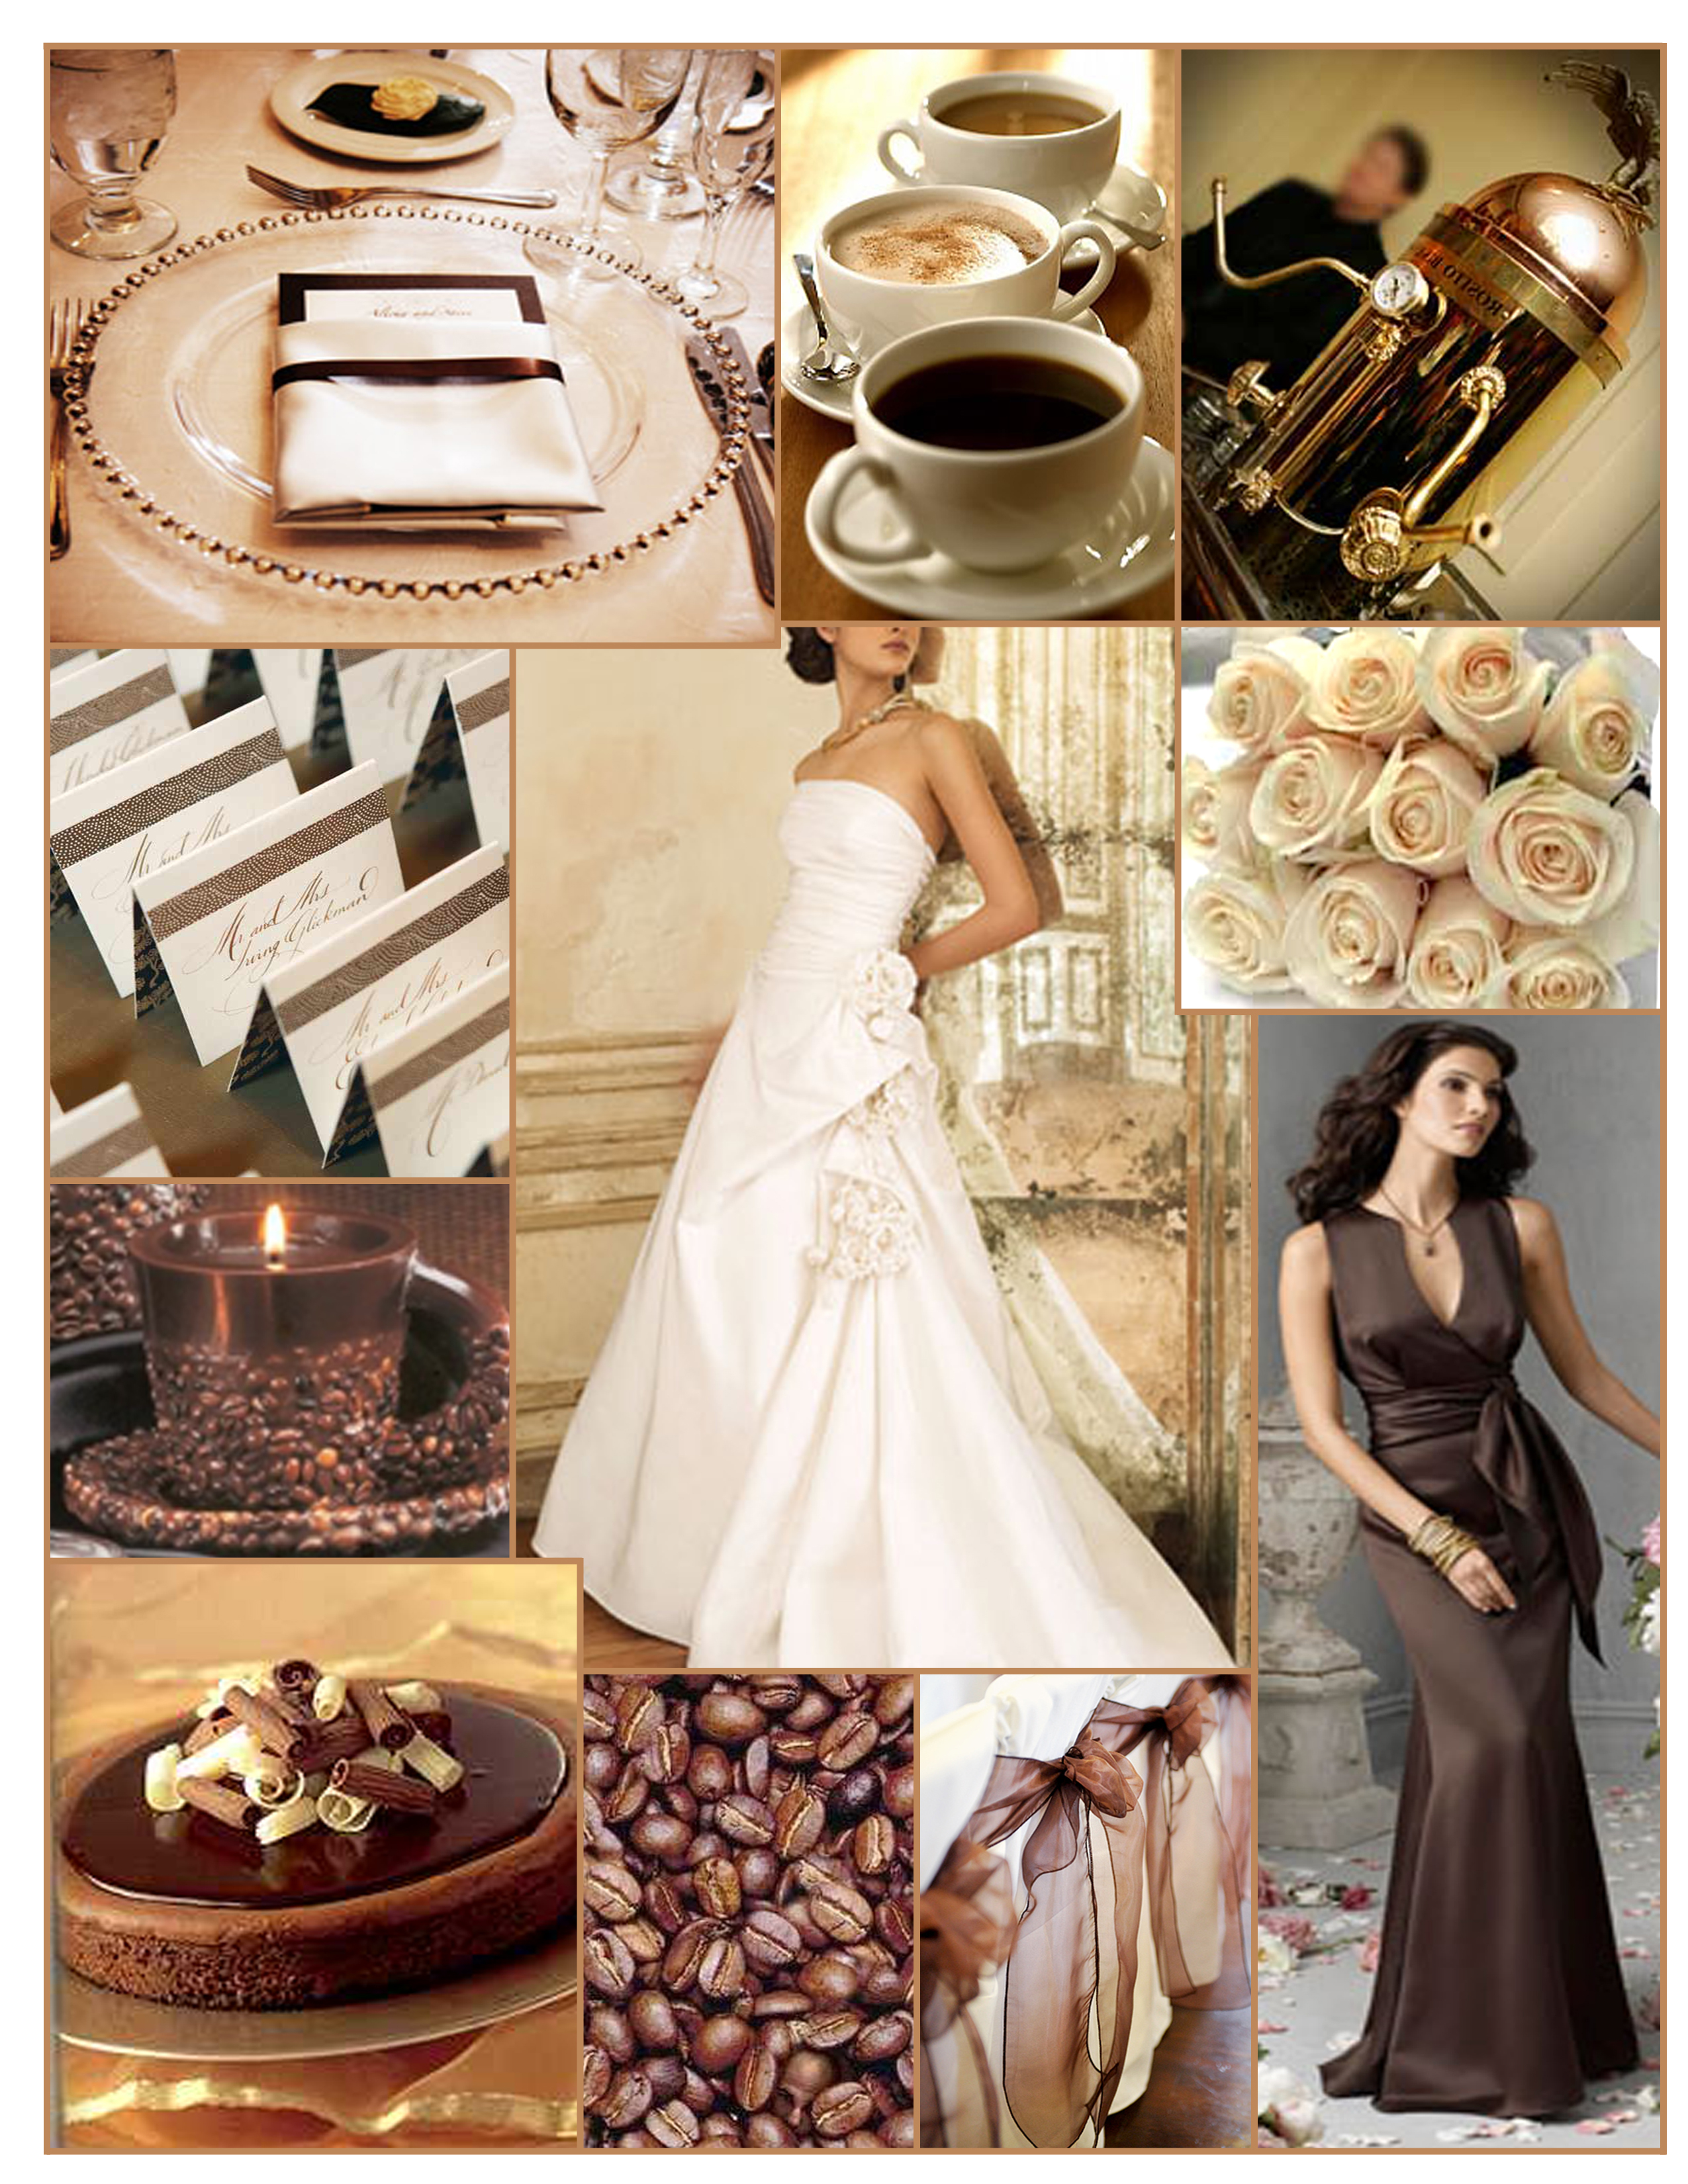 Inspiration, white, brown, Board, Lazaro, Coffee, Mocha, Espresso, Latte, Cappuccino, Jim hjelm occasions, Cream roses, Coffee beans, Coffee theme